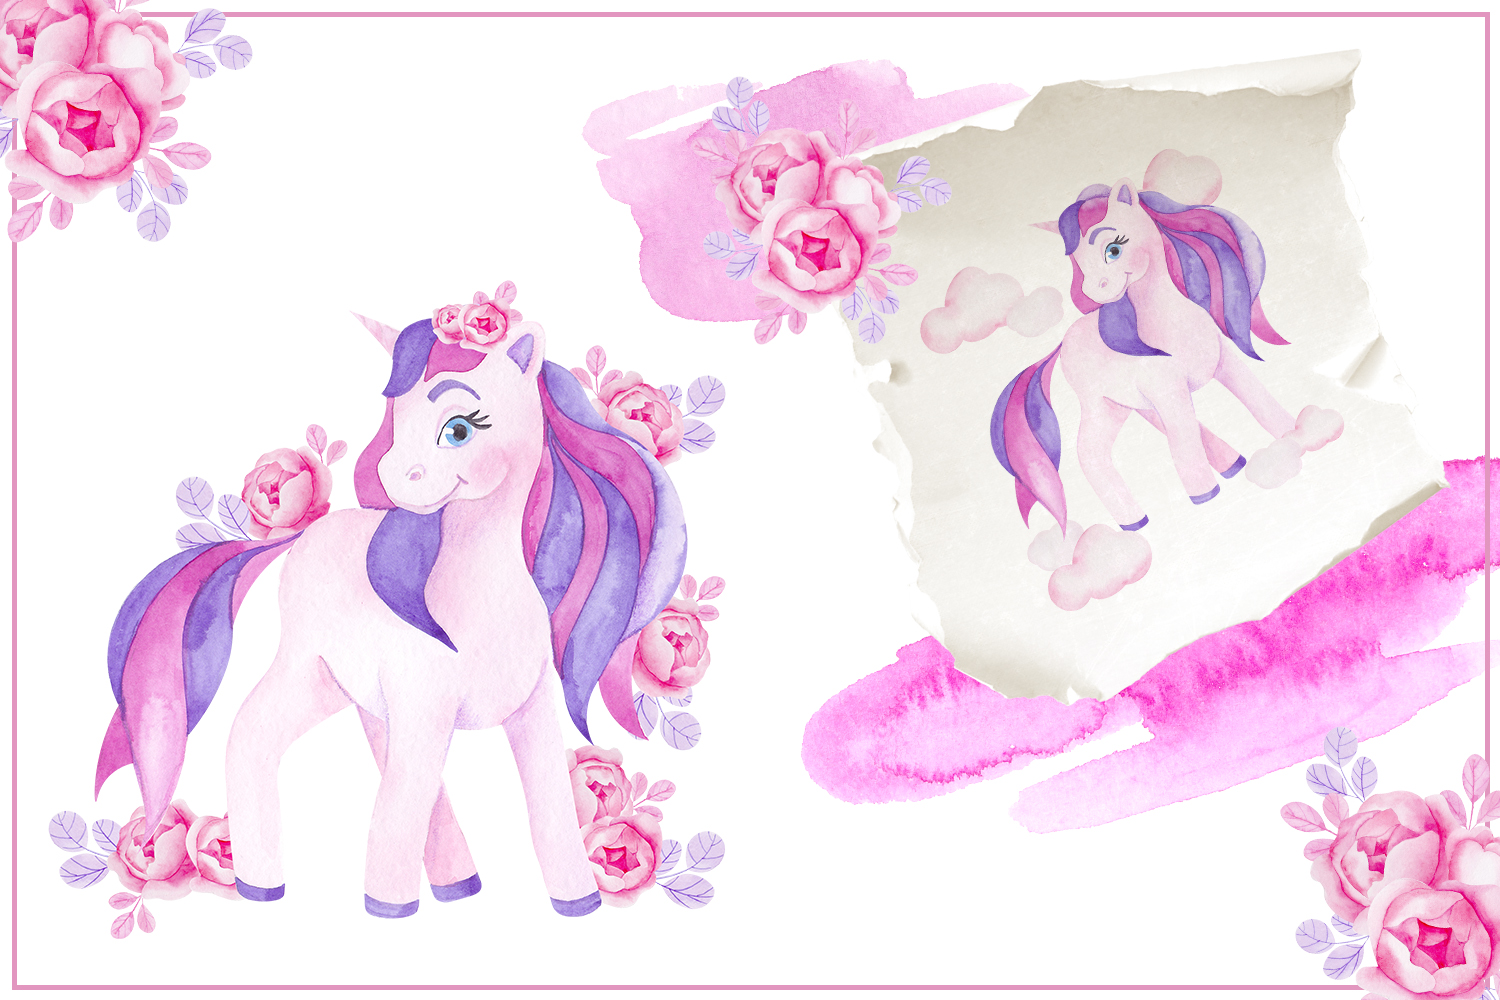 Cute unicorn. Illustrations and alphabet example image 2